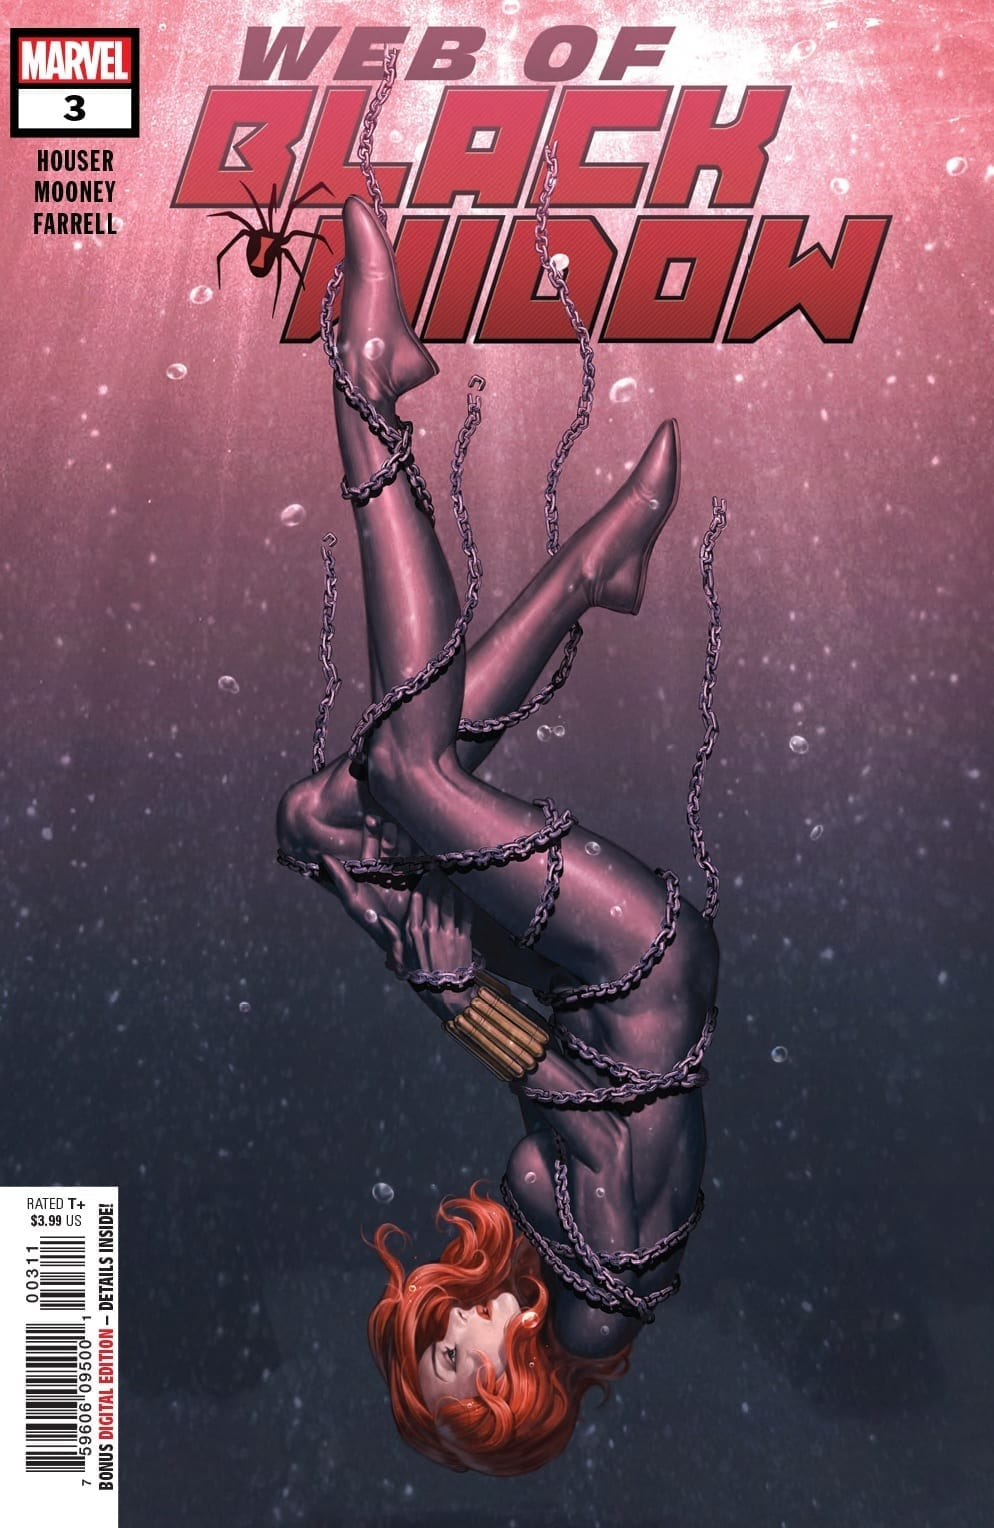 What Is Lost in WEB OF BLACK WIDOW #3 1